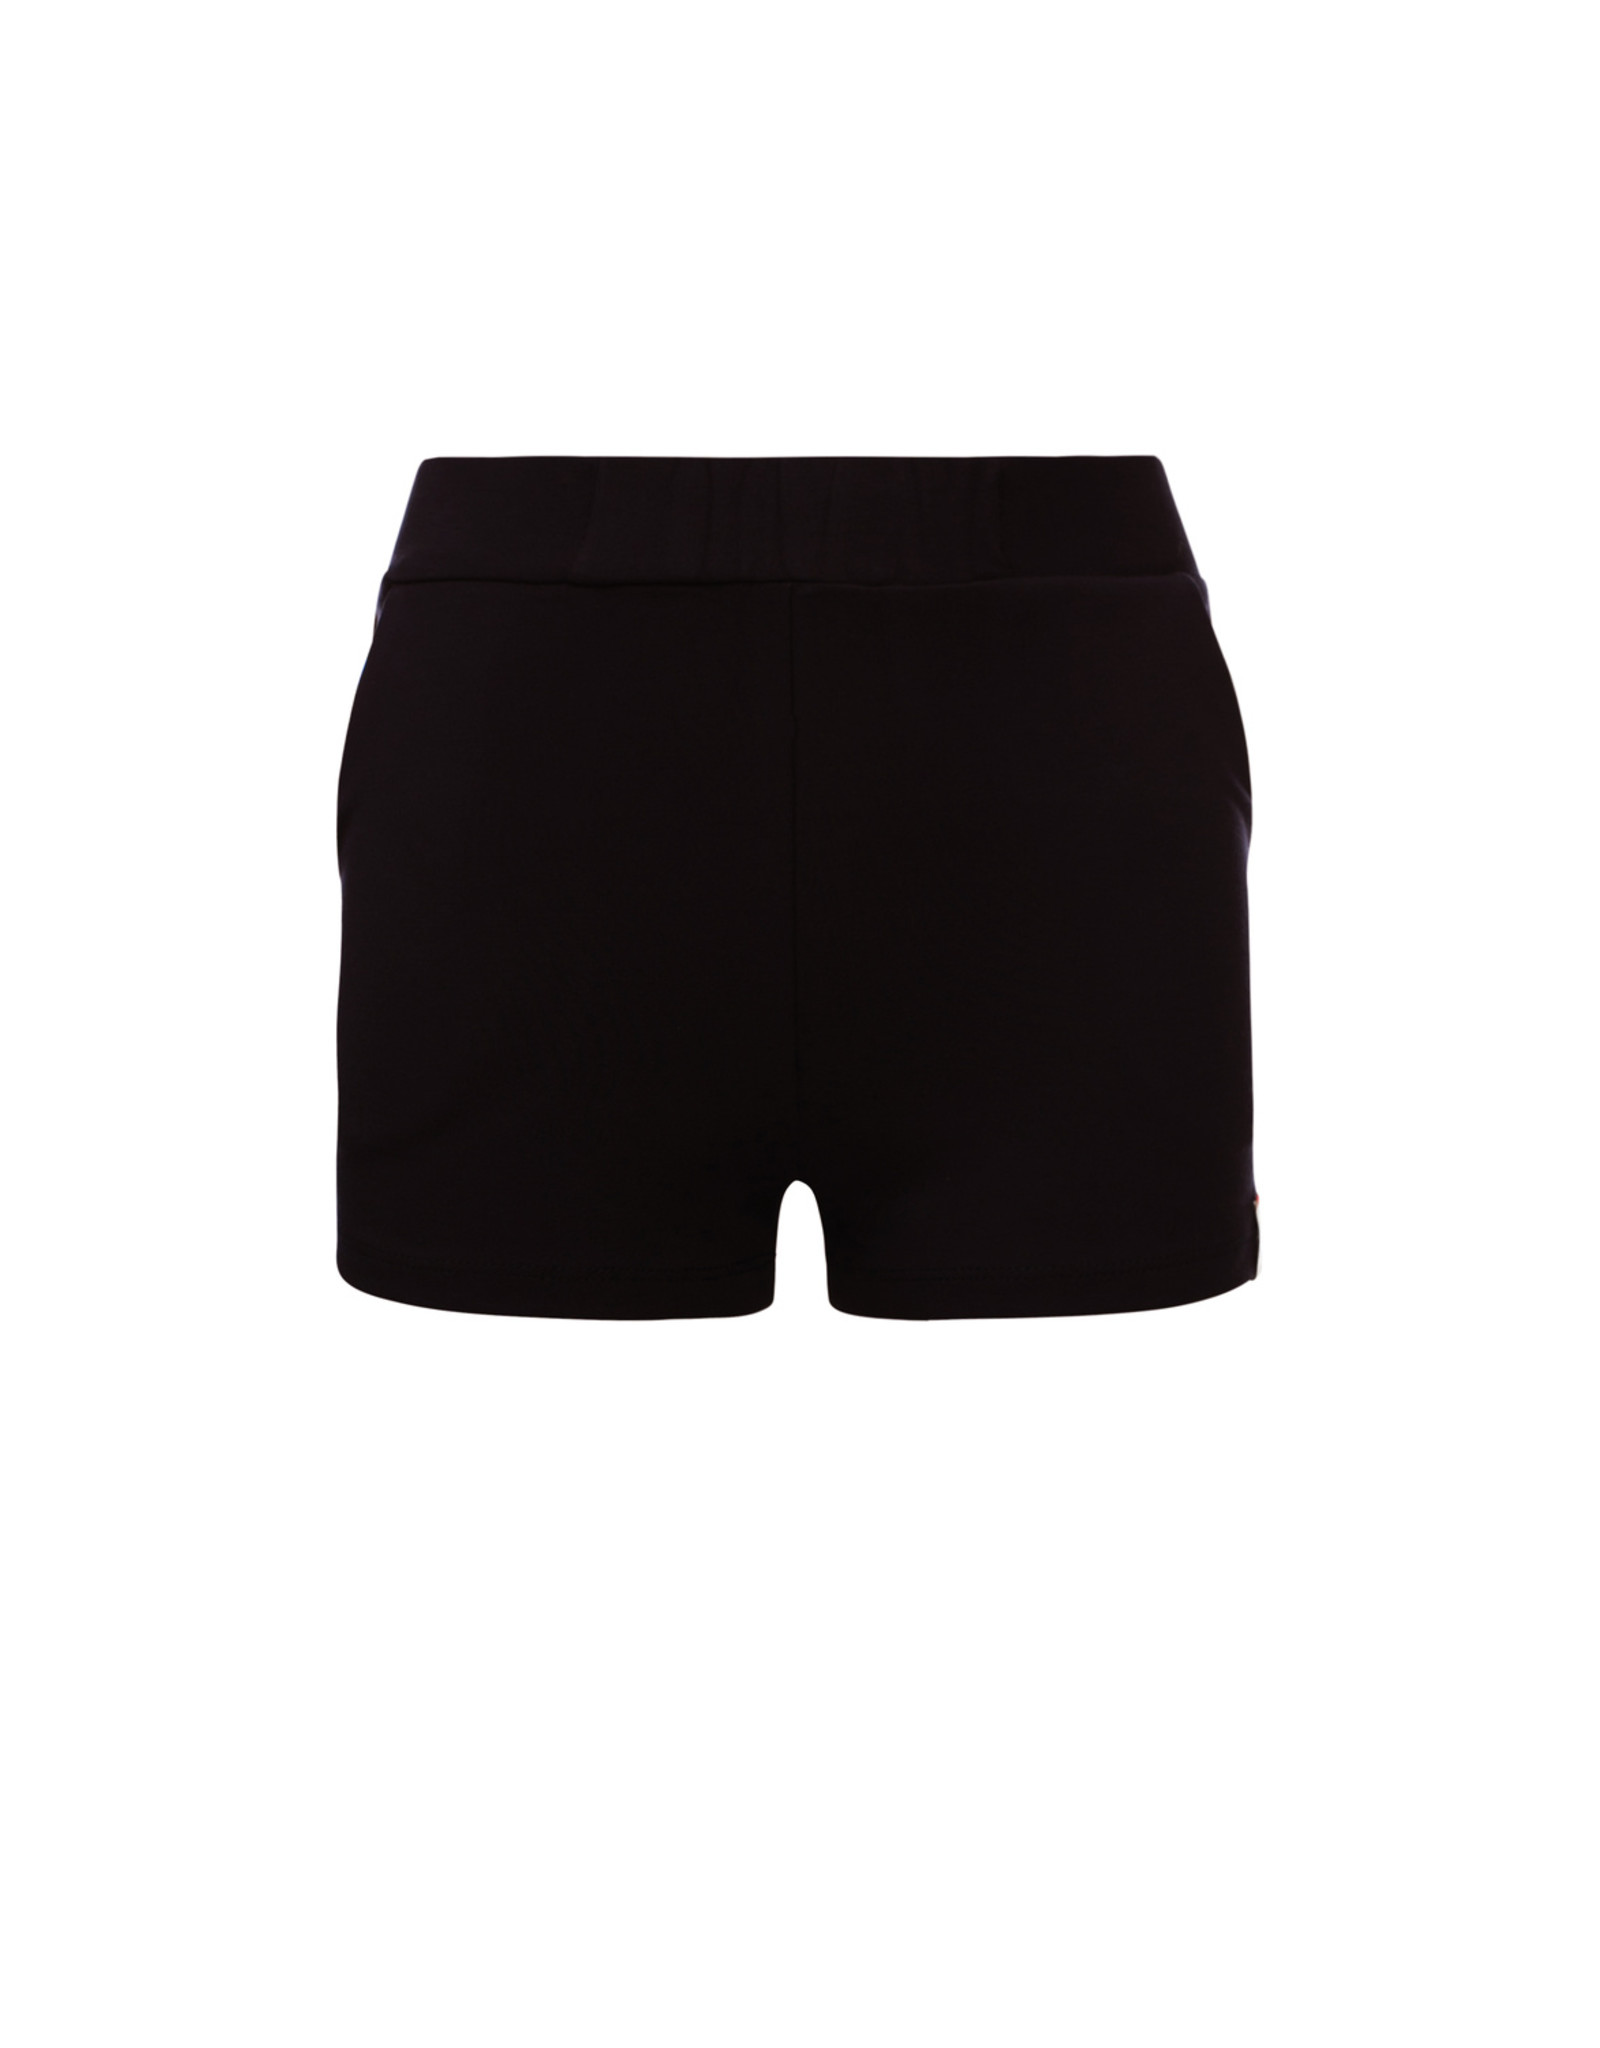 Looxs Revolution Girls shorts navy